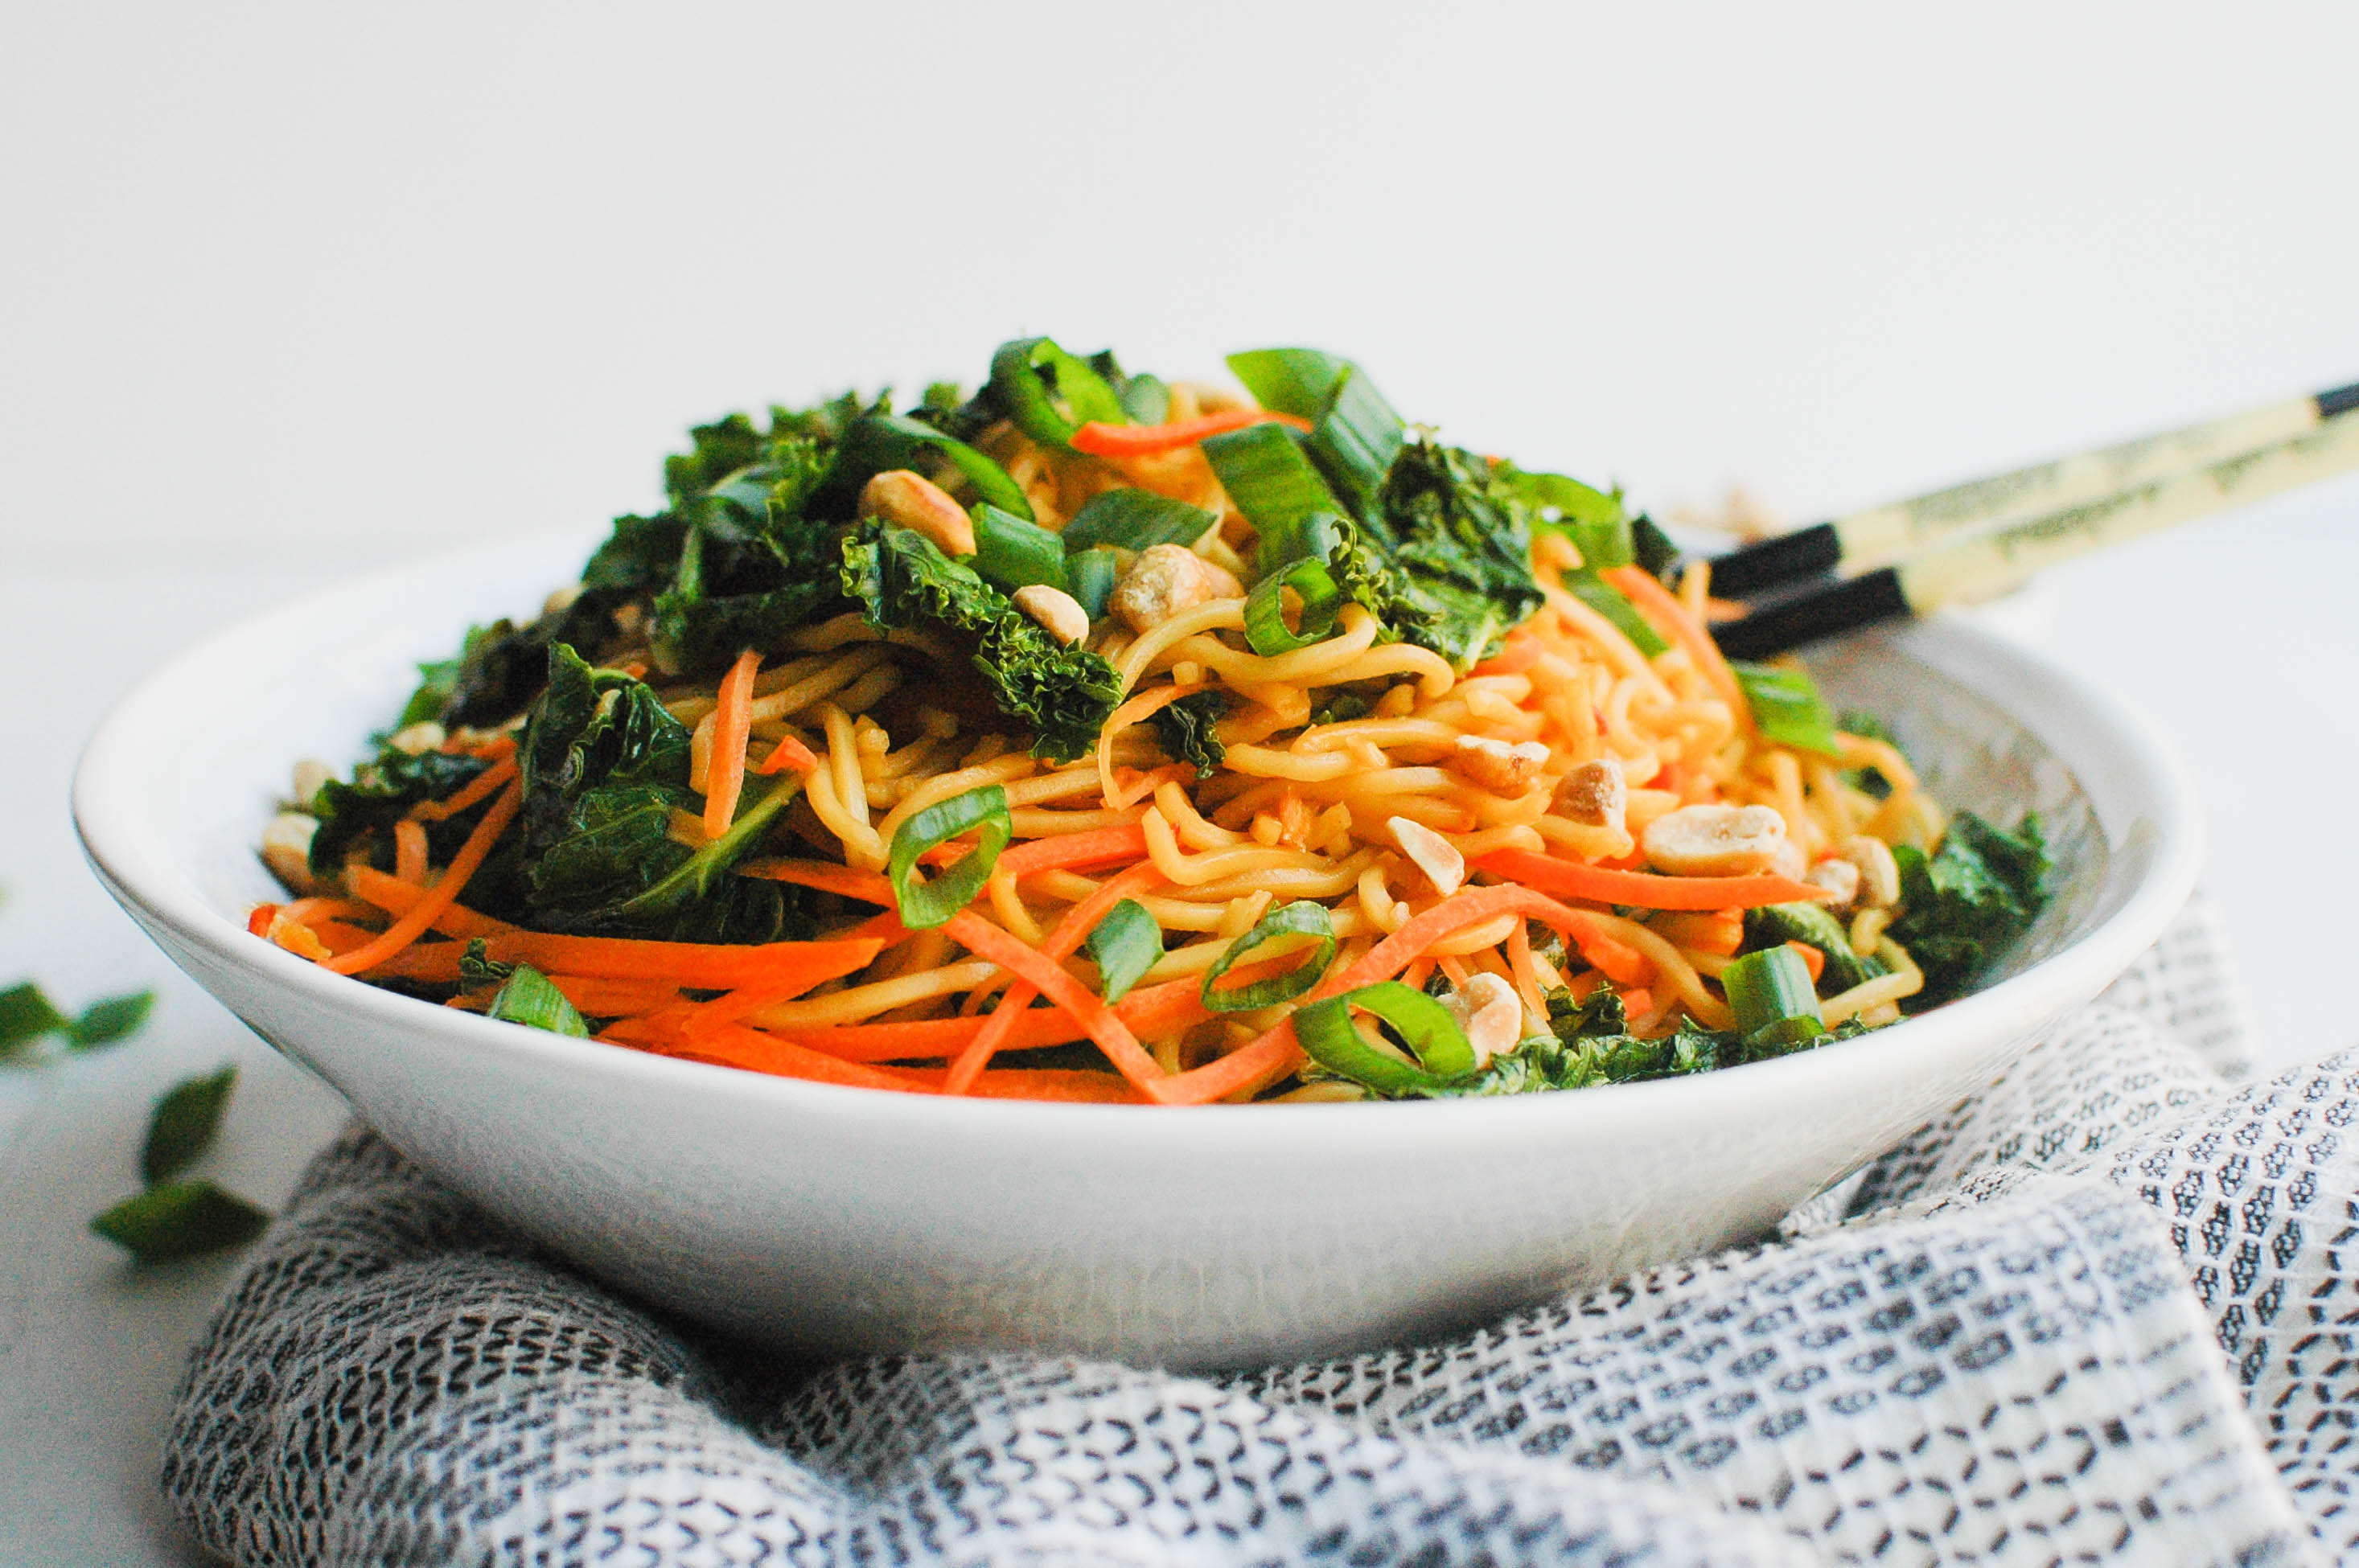 Spicy Kale Soba Noodle Bowl - Vegetarian Recipe - Meal Planning Ideas - Vegetarian Meal Prep - Dinner Idea - Communikait by Kait Hanson